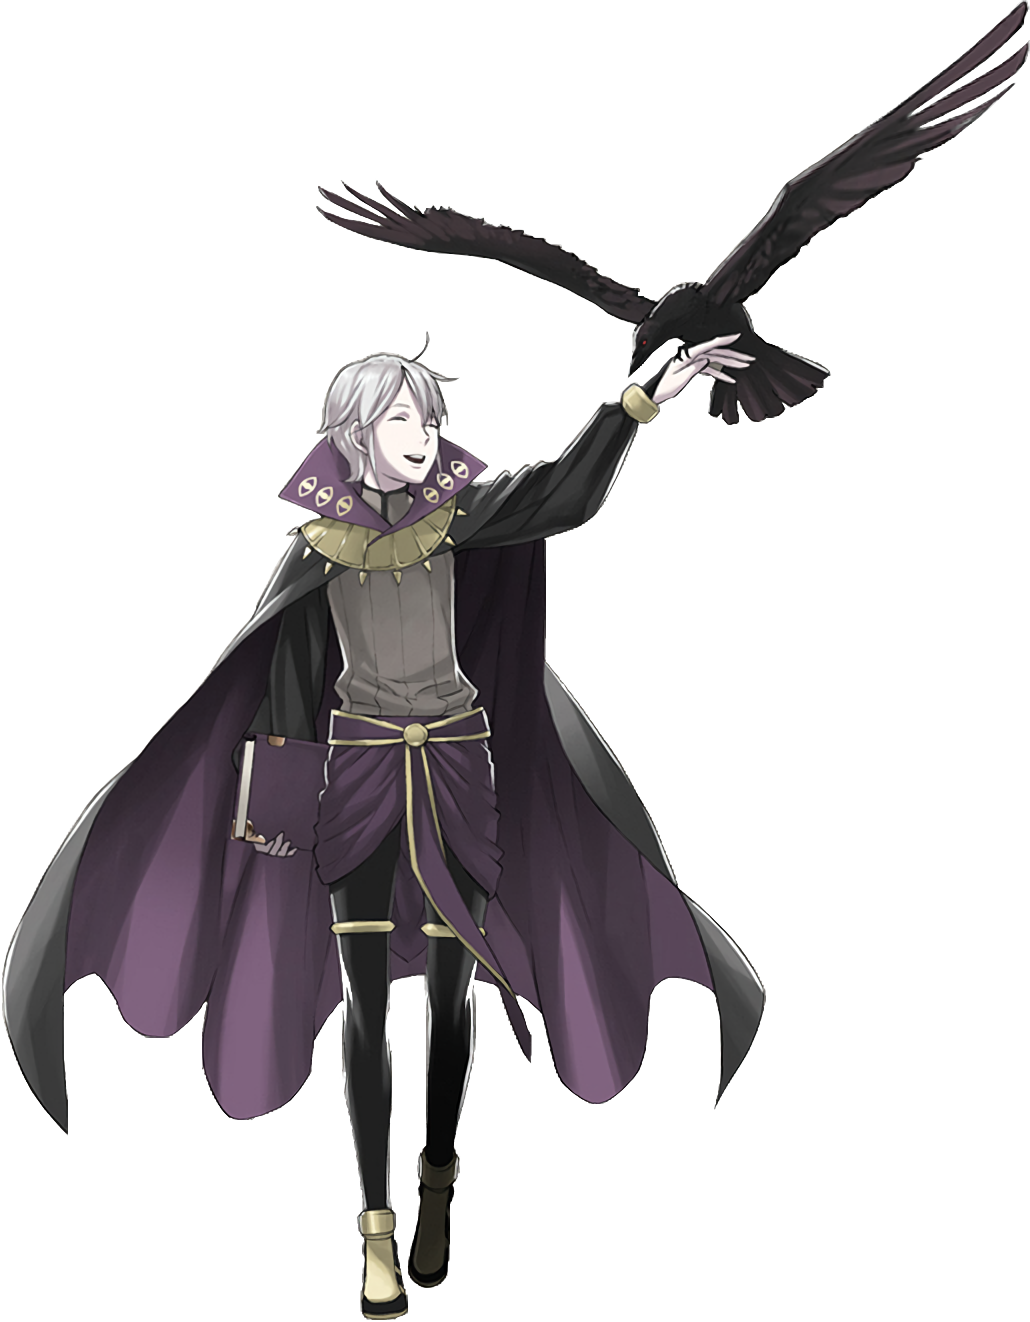 Fire Emblem Awakening Swordmaster Critical Path